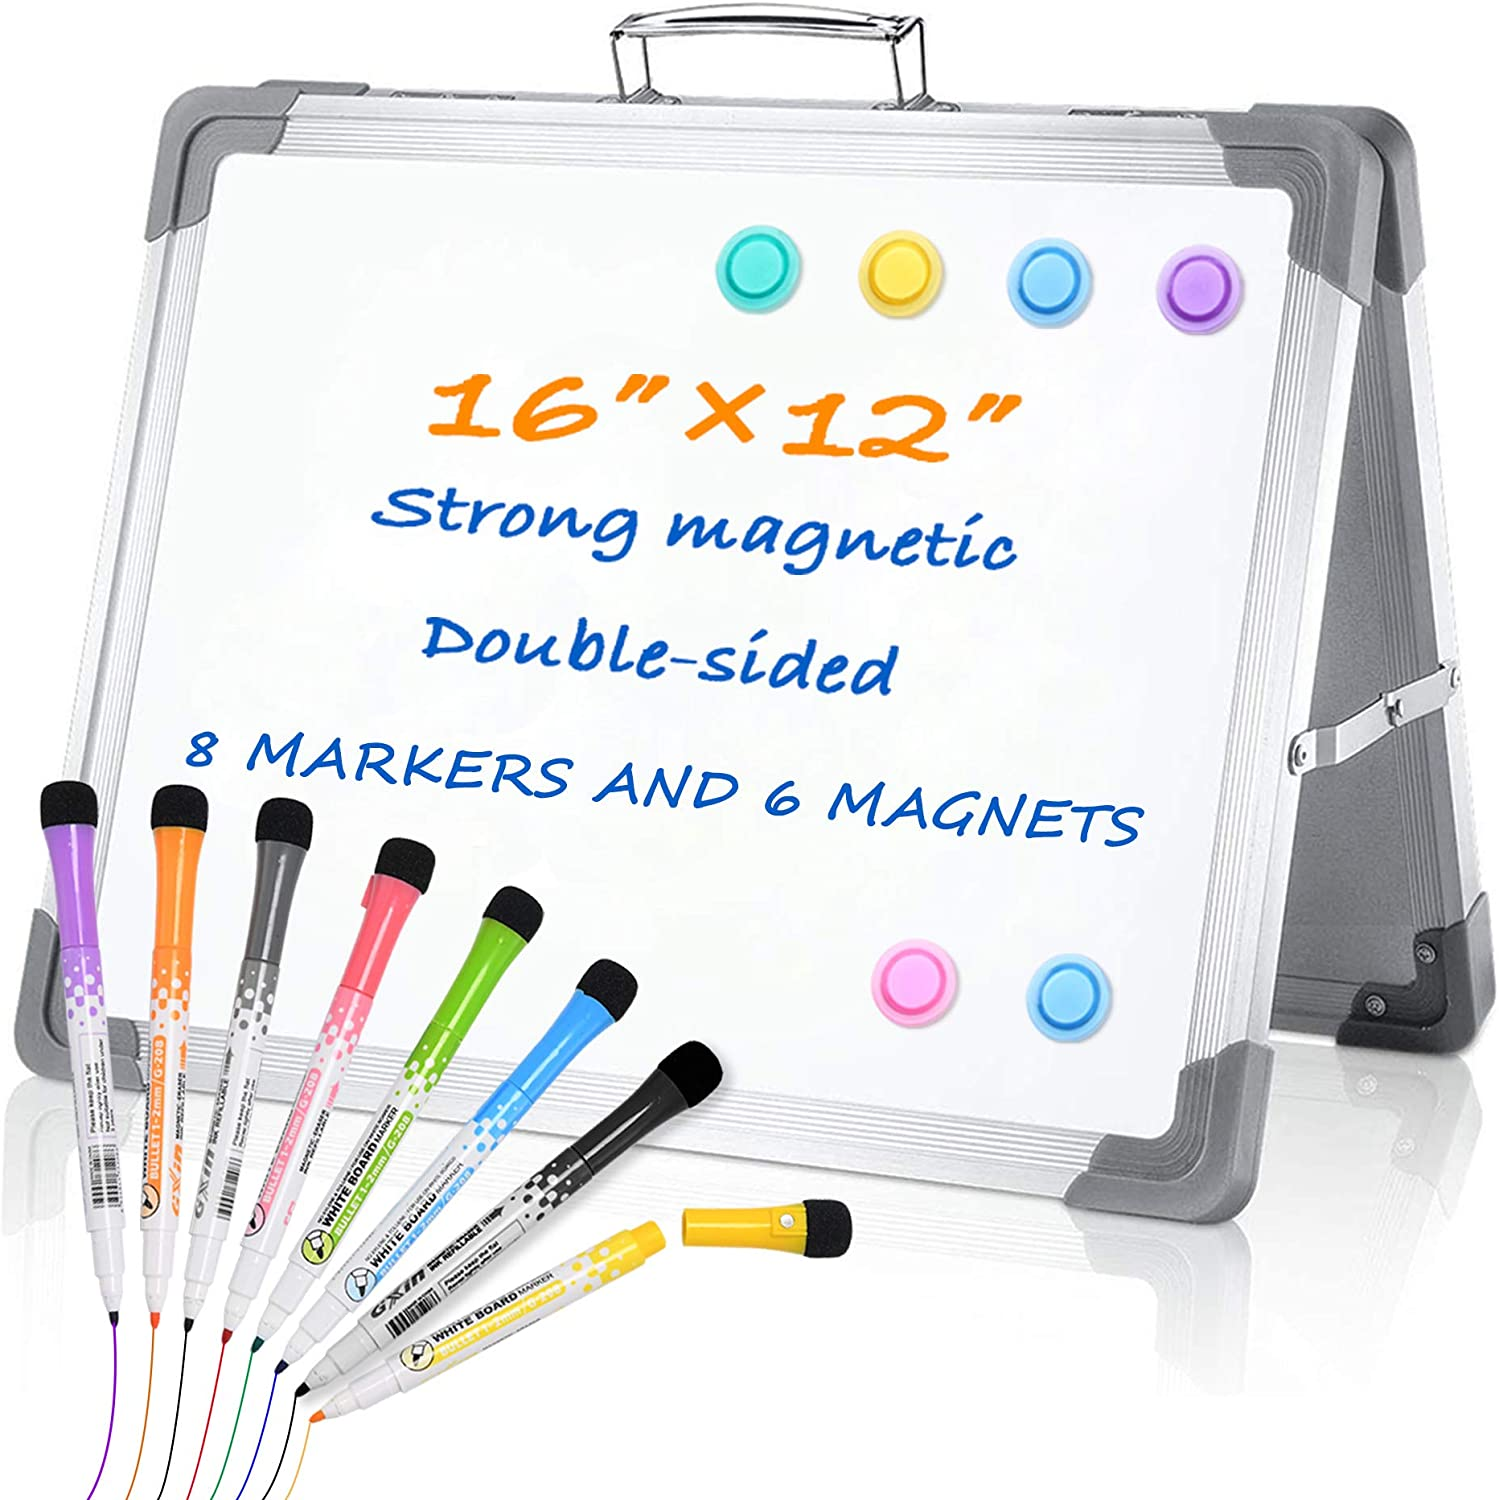 Grope Magnetic Small Dry Erase White Board 16 inches x 12 inches, Foldable Double Sided Mini Whiteboard for Kids, Includes 8 Different Colors Dry Erase Markers, 6 Magnets